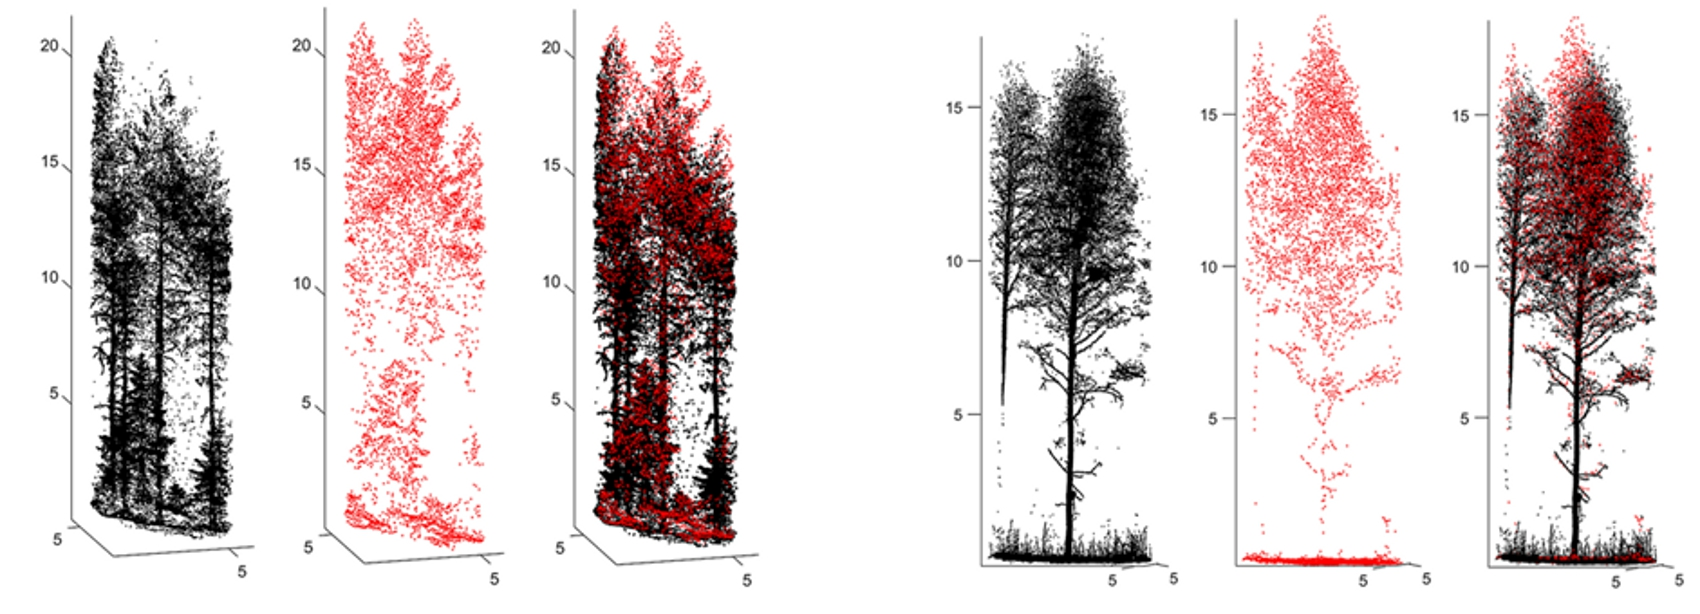 ALS pointcloud of trees